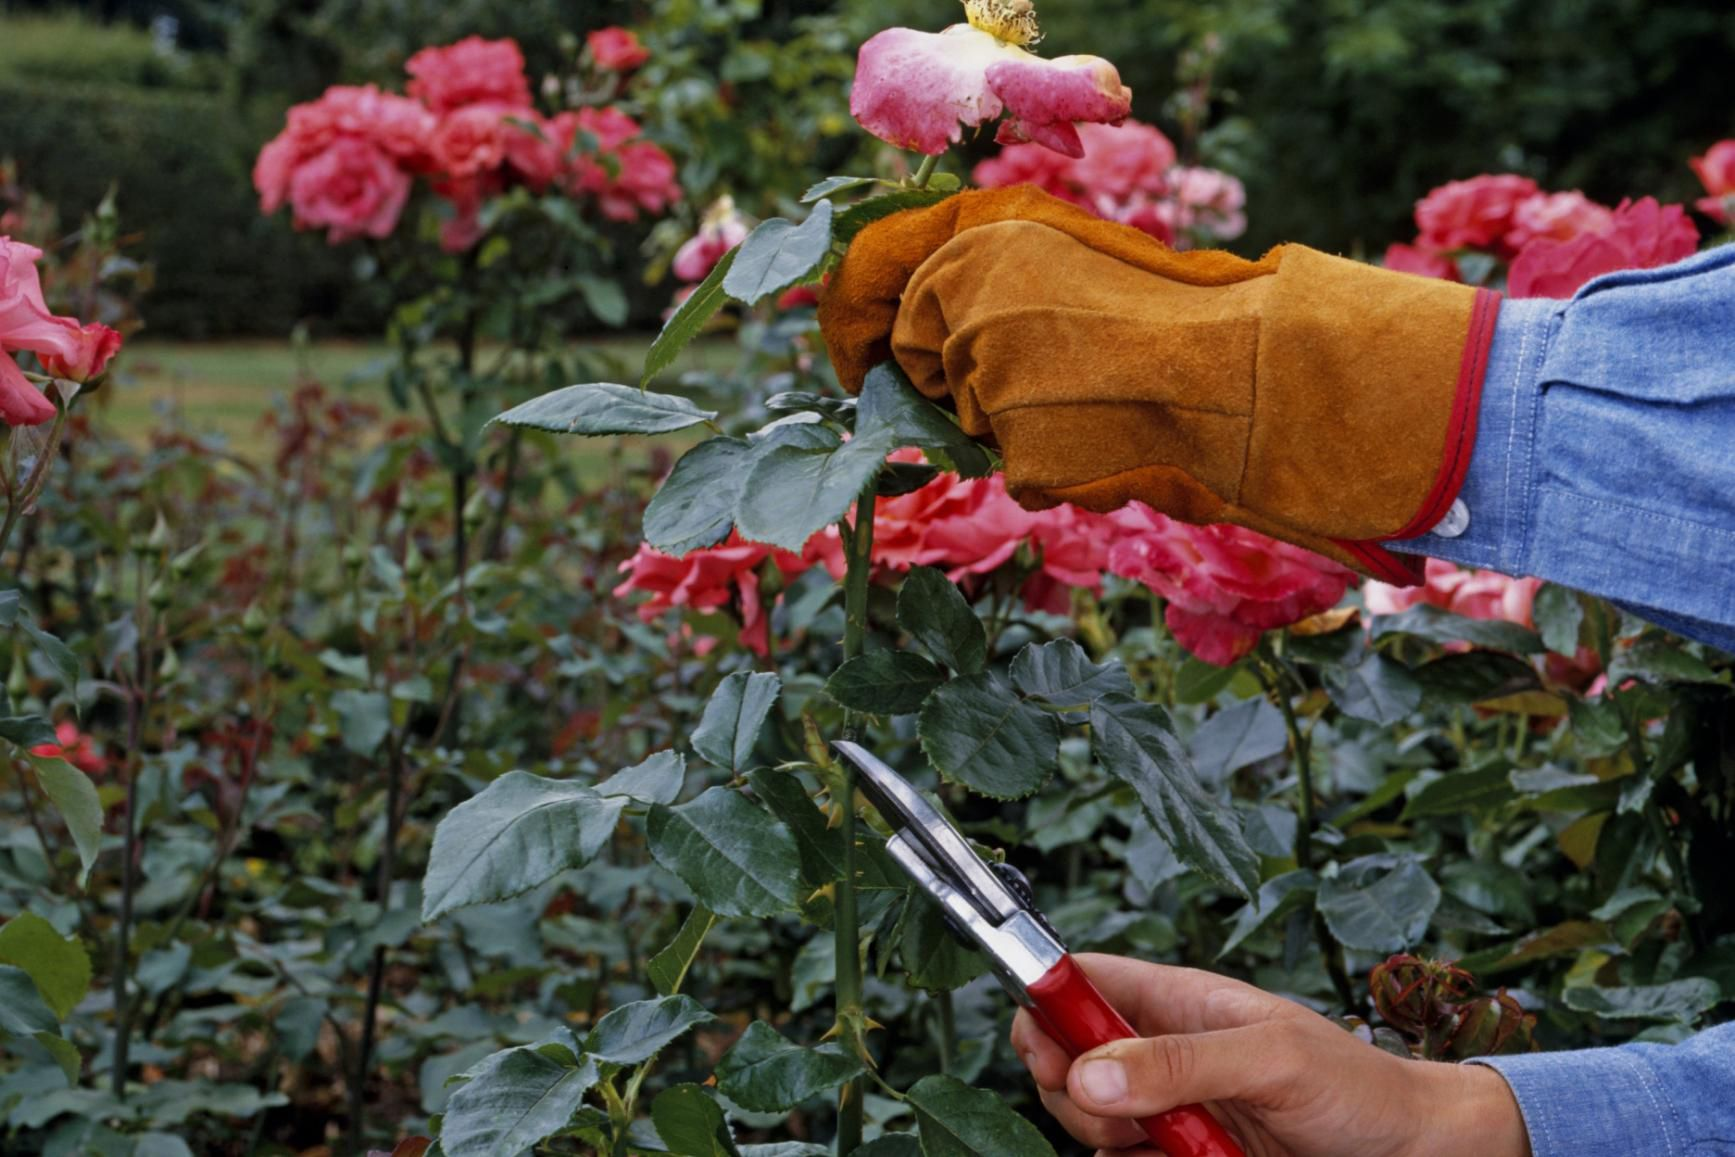 How to trim a rose bush - Learn The Best Method To Prune Your Hybrid Tea Roses